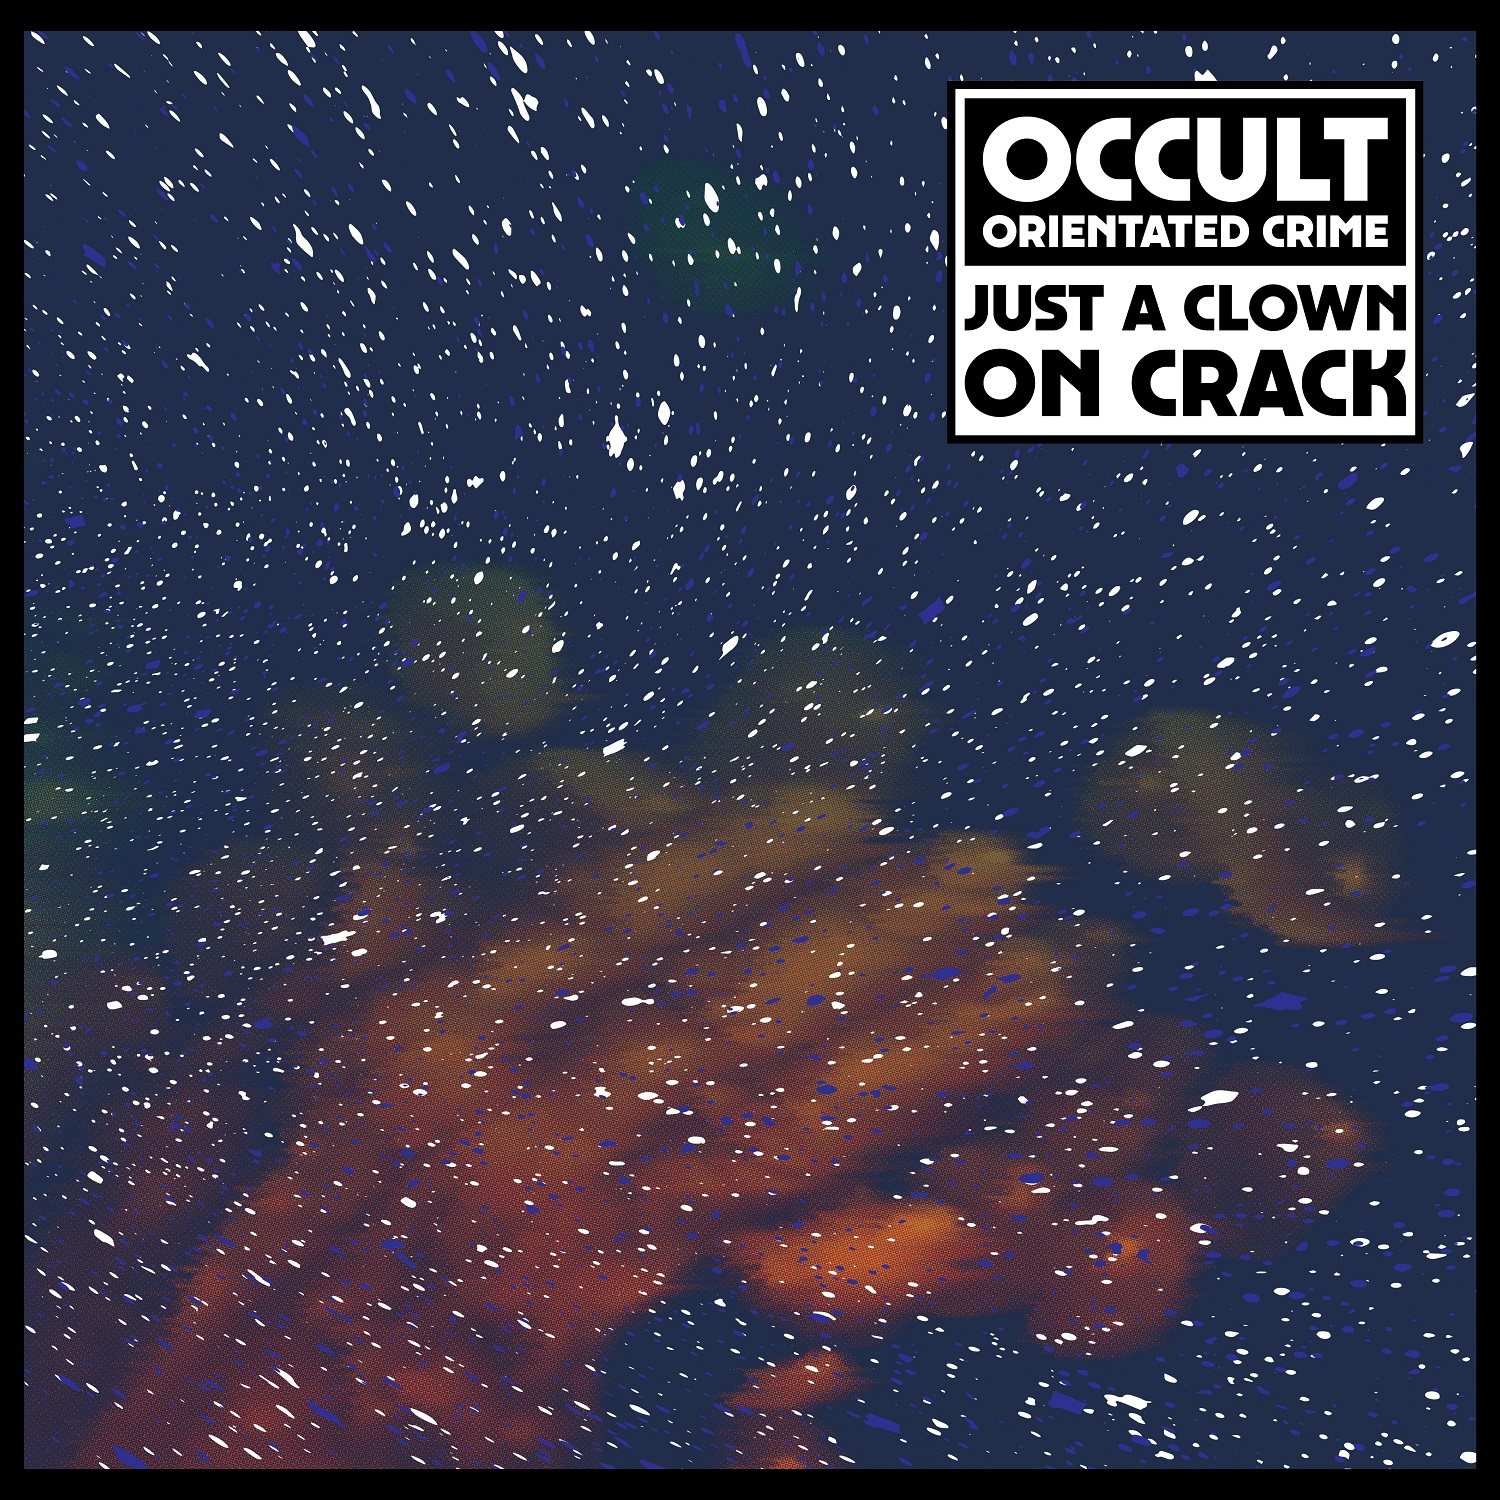 OCCULT ORIENTATED CRIME - JUST A CLOWN ON CRACK (DEKMANTEL, 2016)